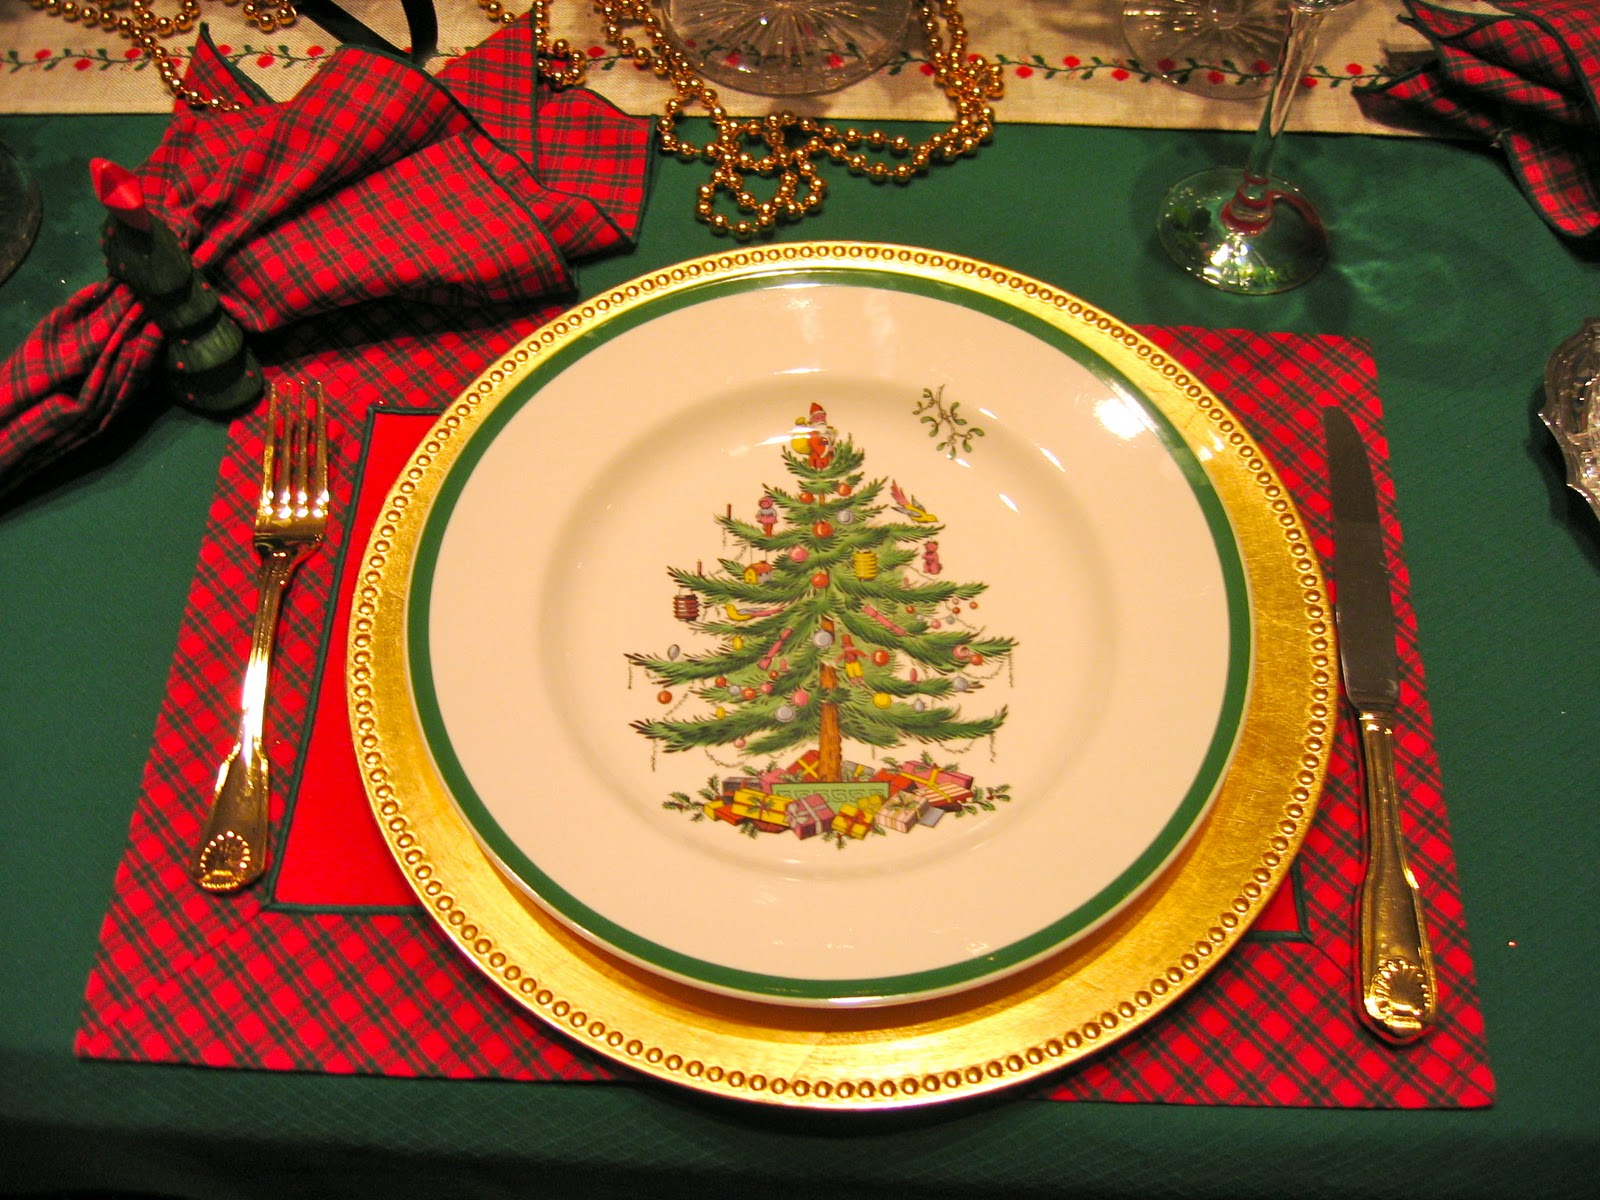 MAY DAYS: The Dining Room At Christmas